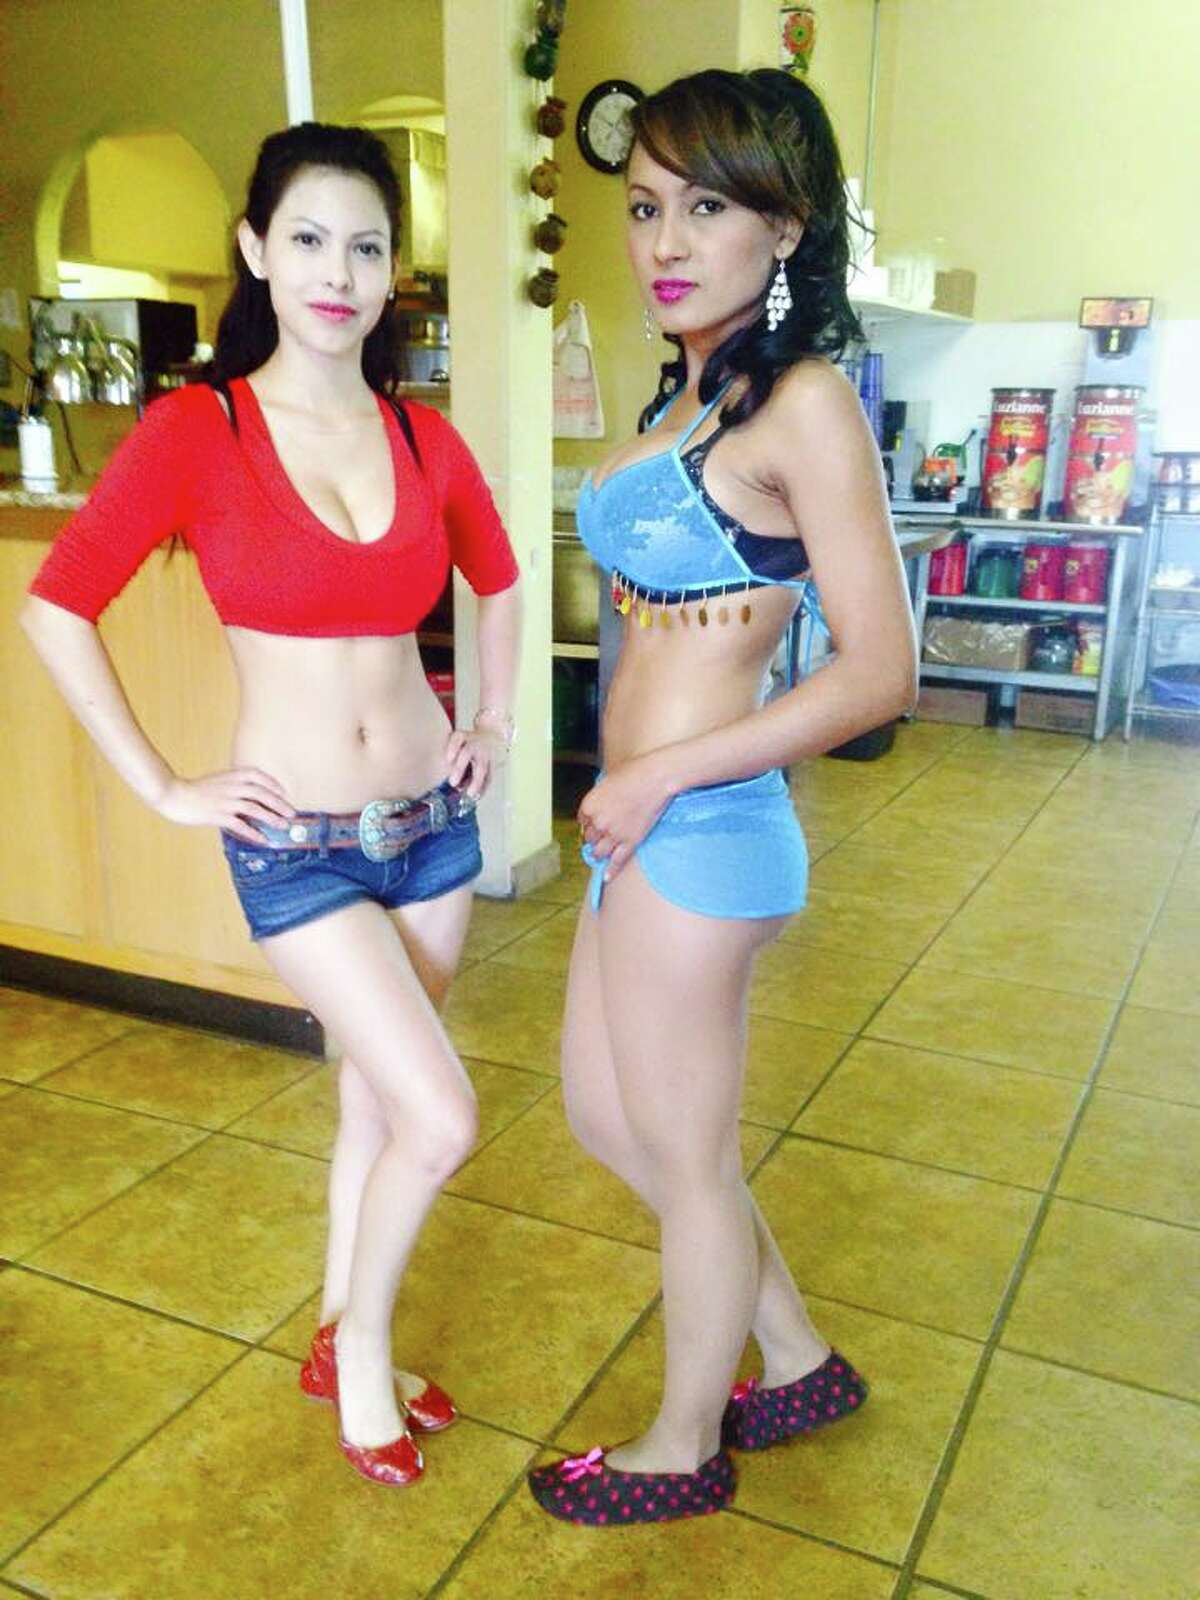 San Antonio Restaurant Serves Breakfast Tacos With A Side Of Lingerie